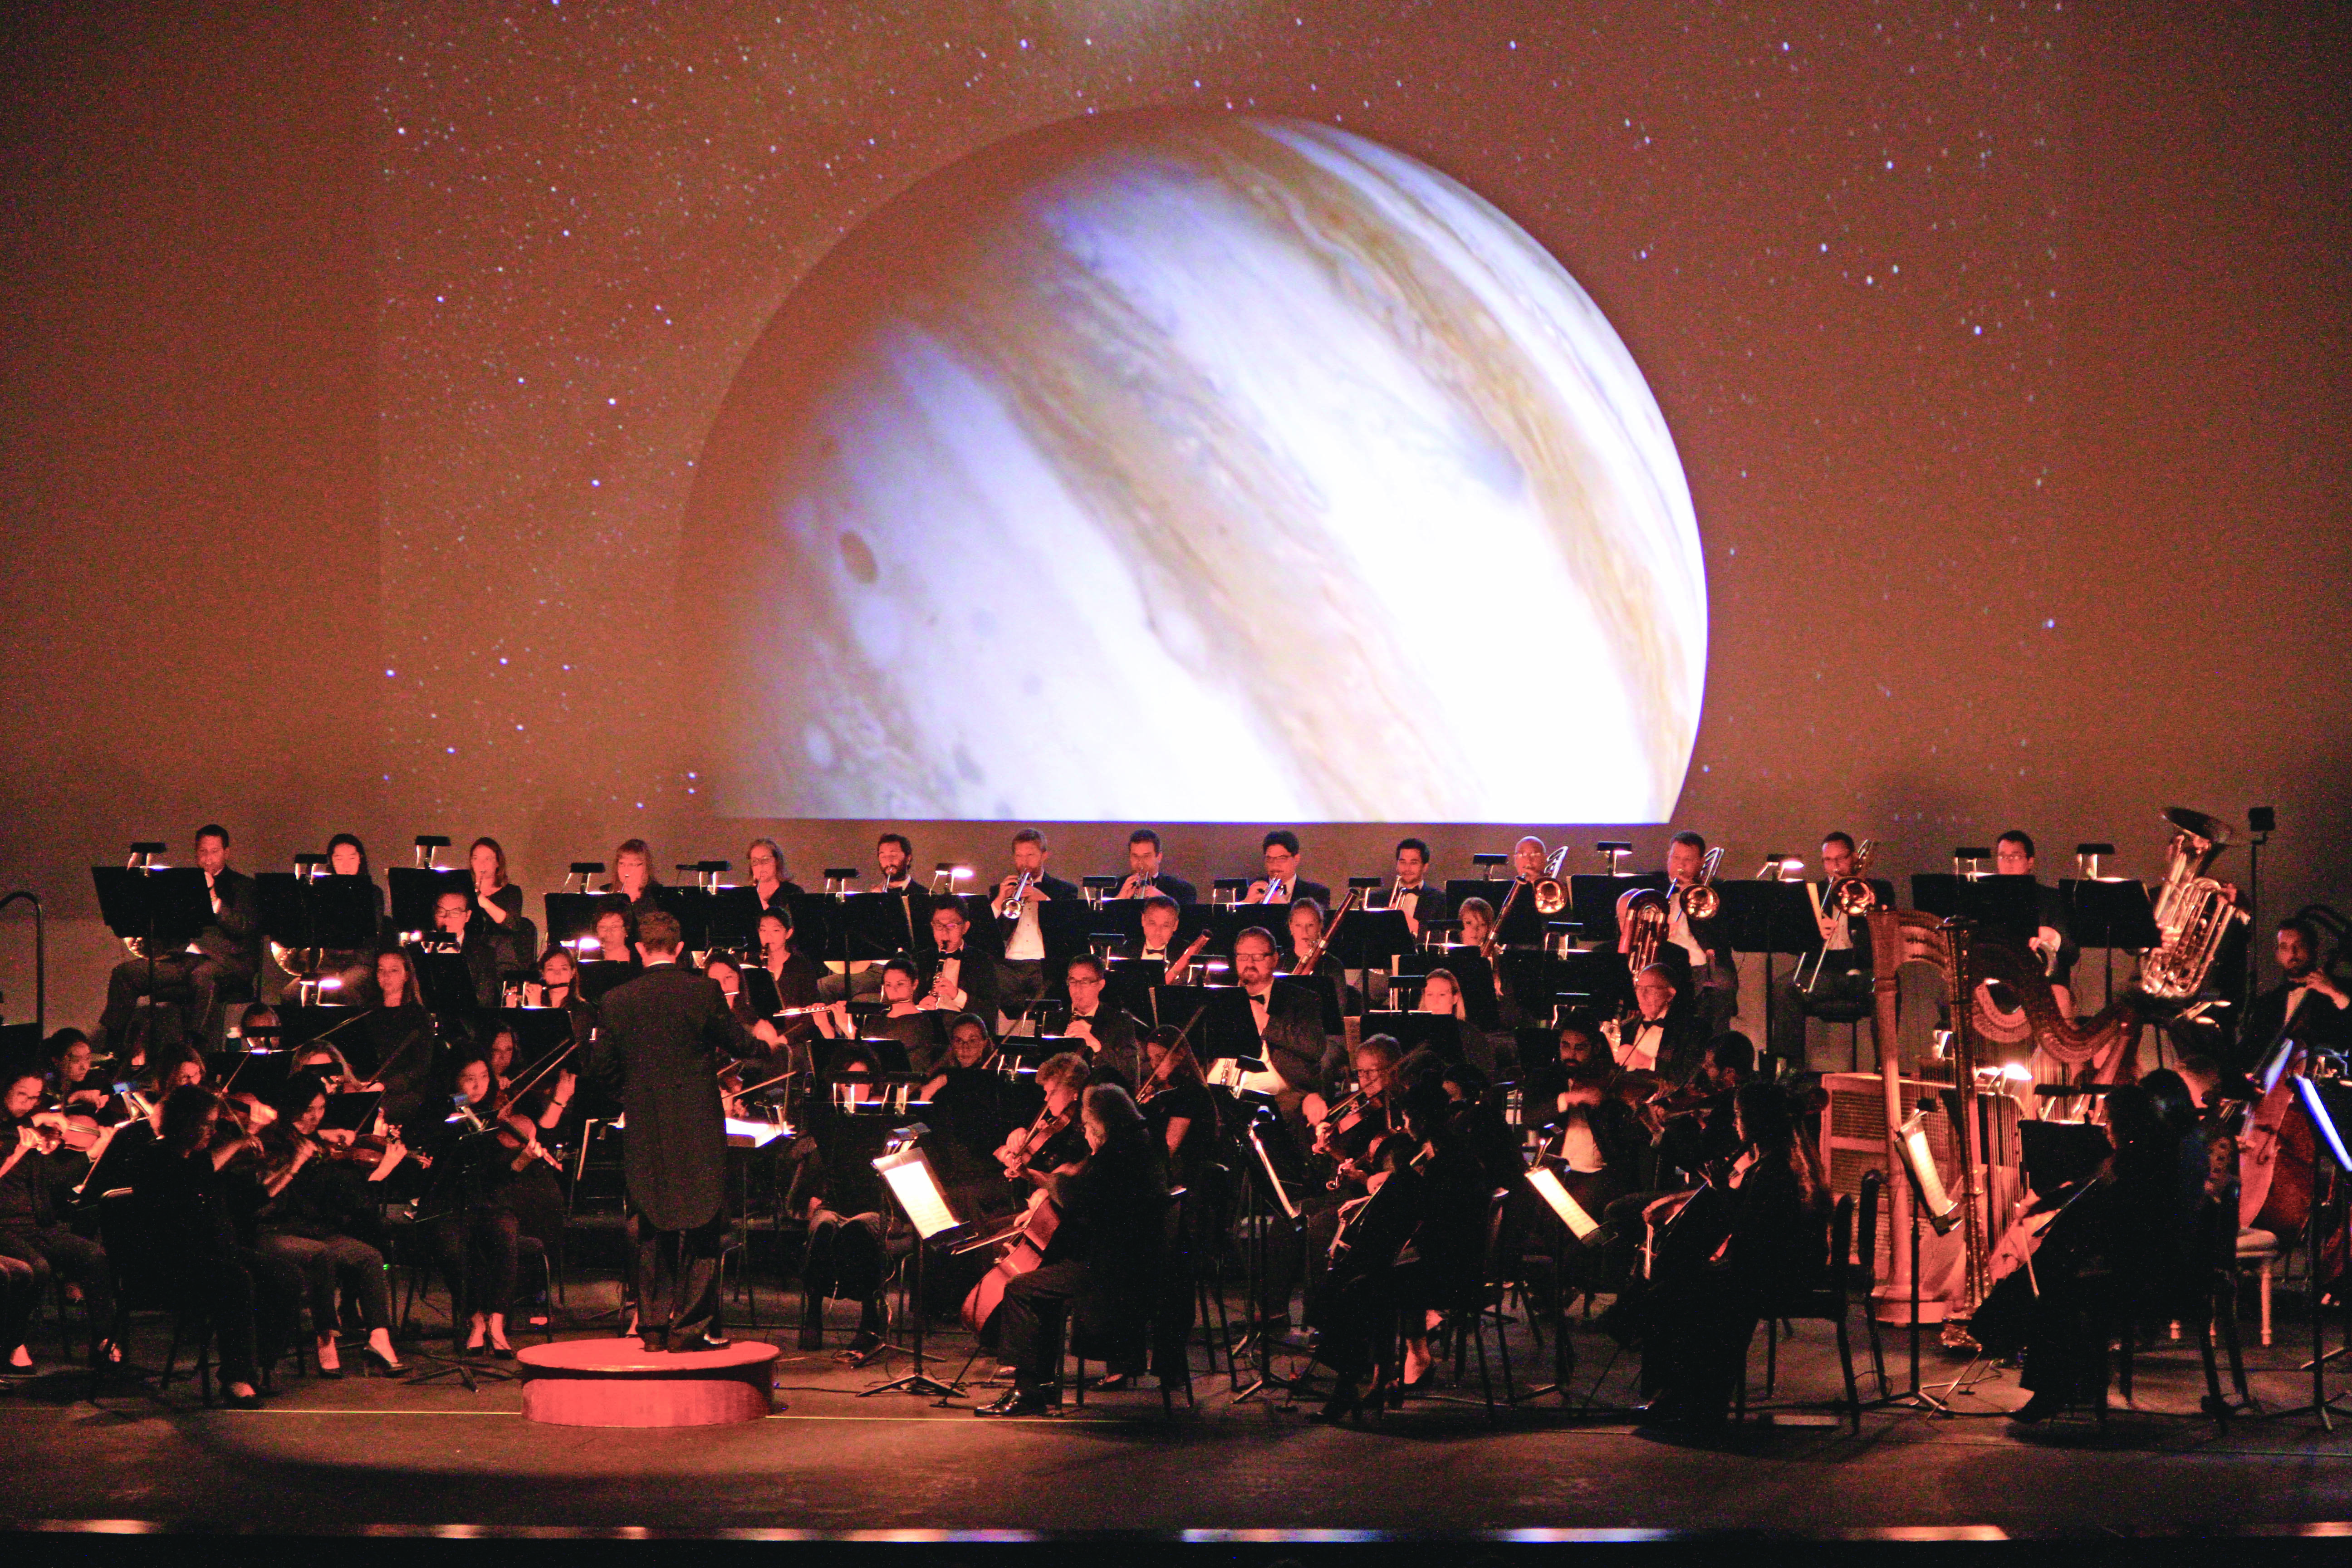 ATEC Joins Richardson Symphony Orchestra to Celebrate Anniversary of Apollo 11 Mission